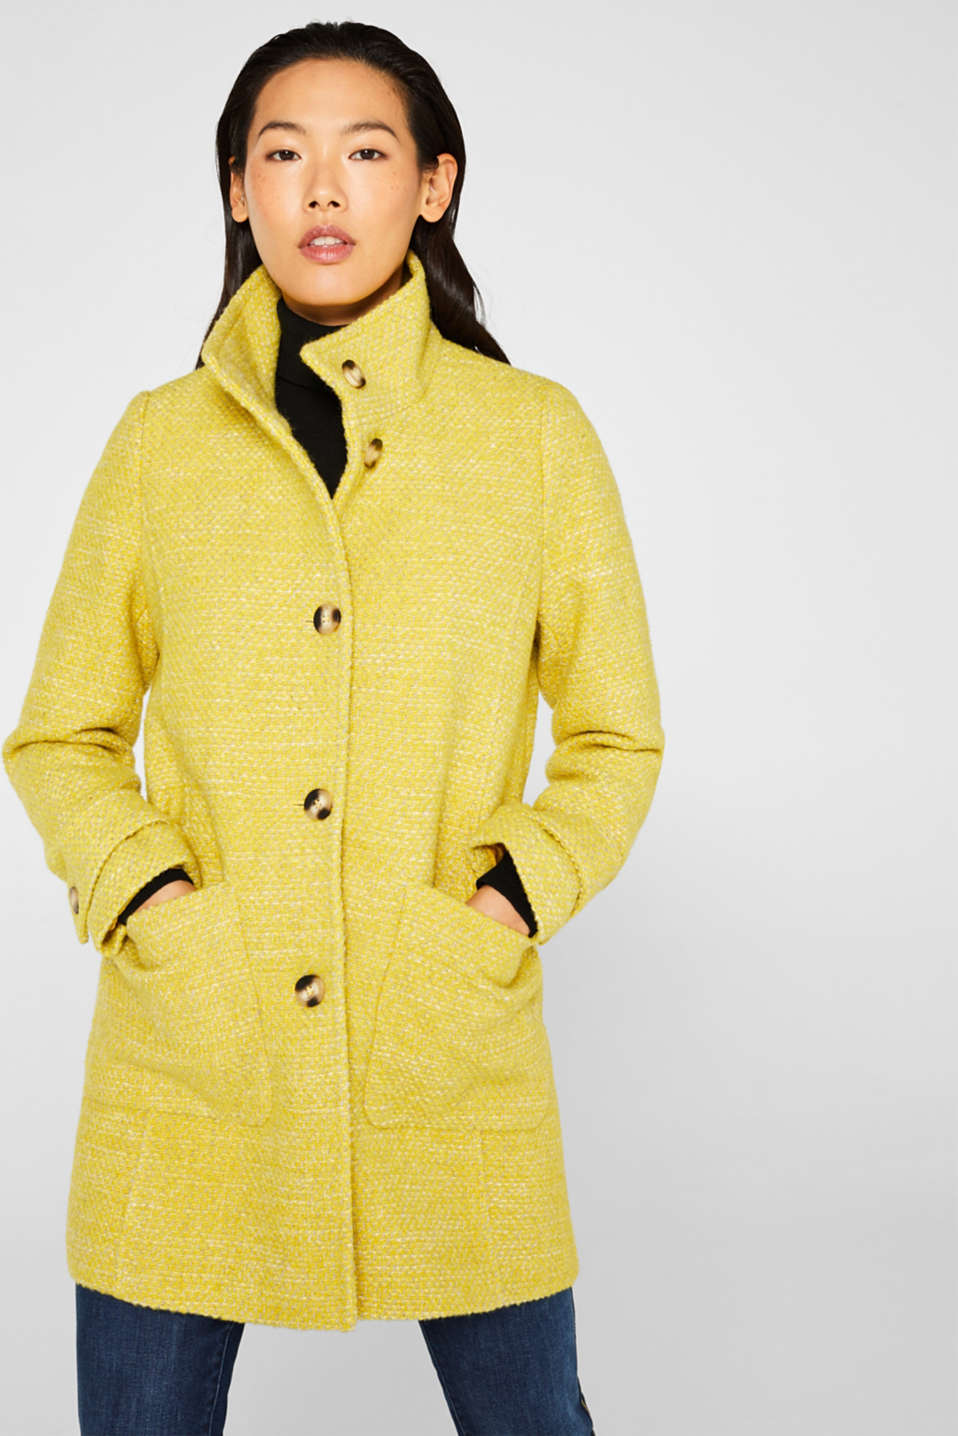 Esprit - Made of blended wool: coat in a two-tone look